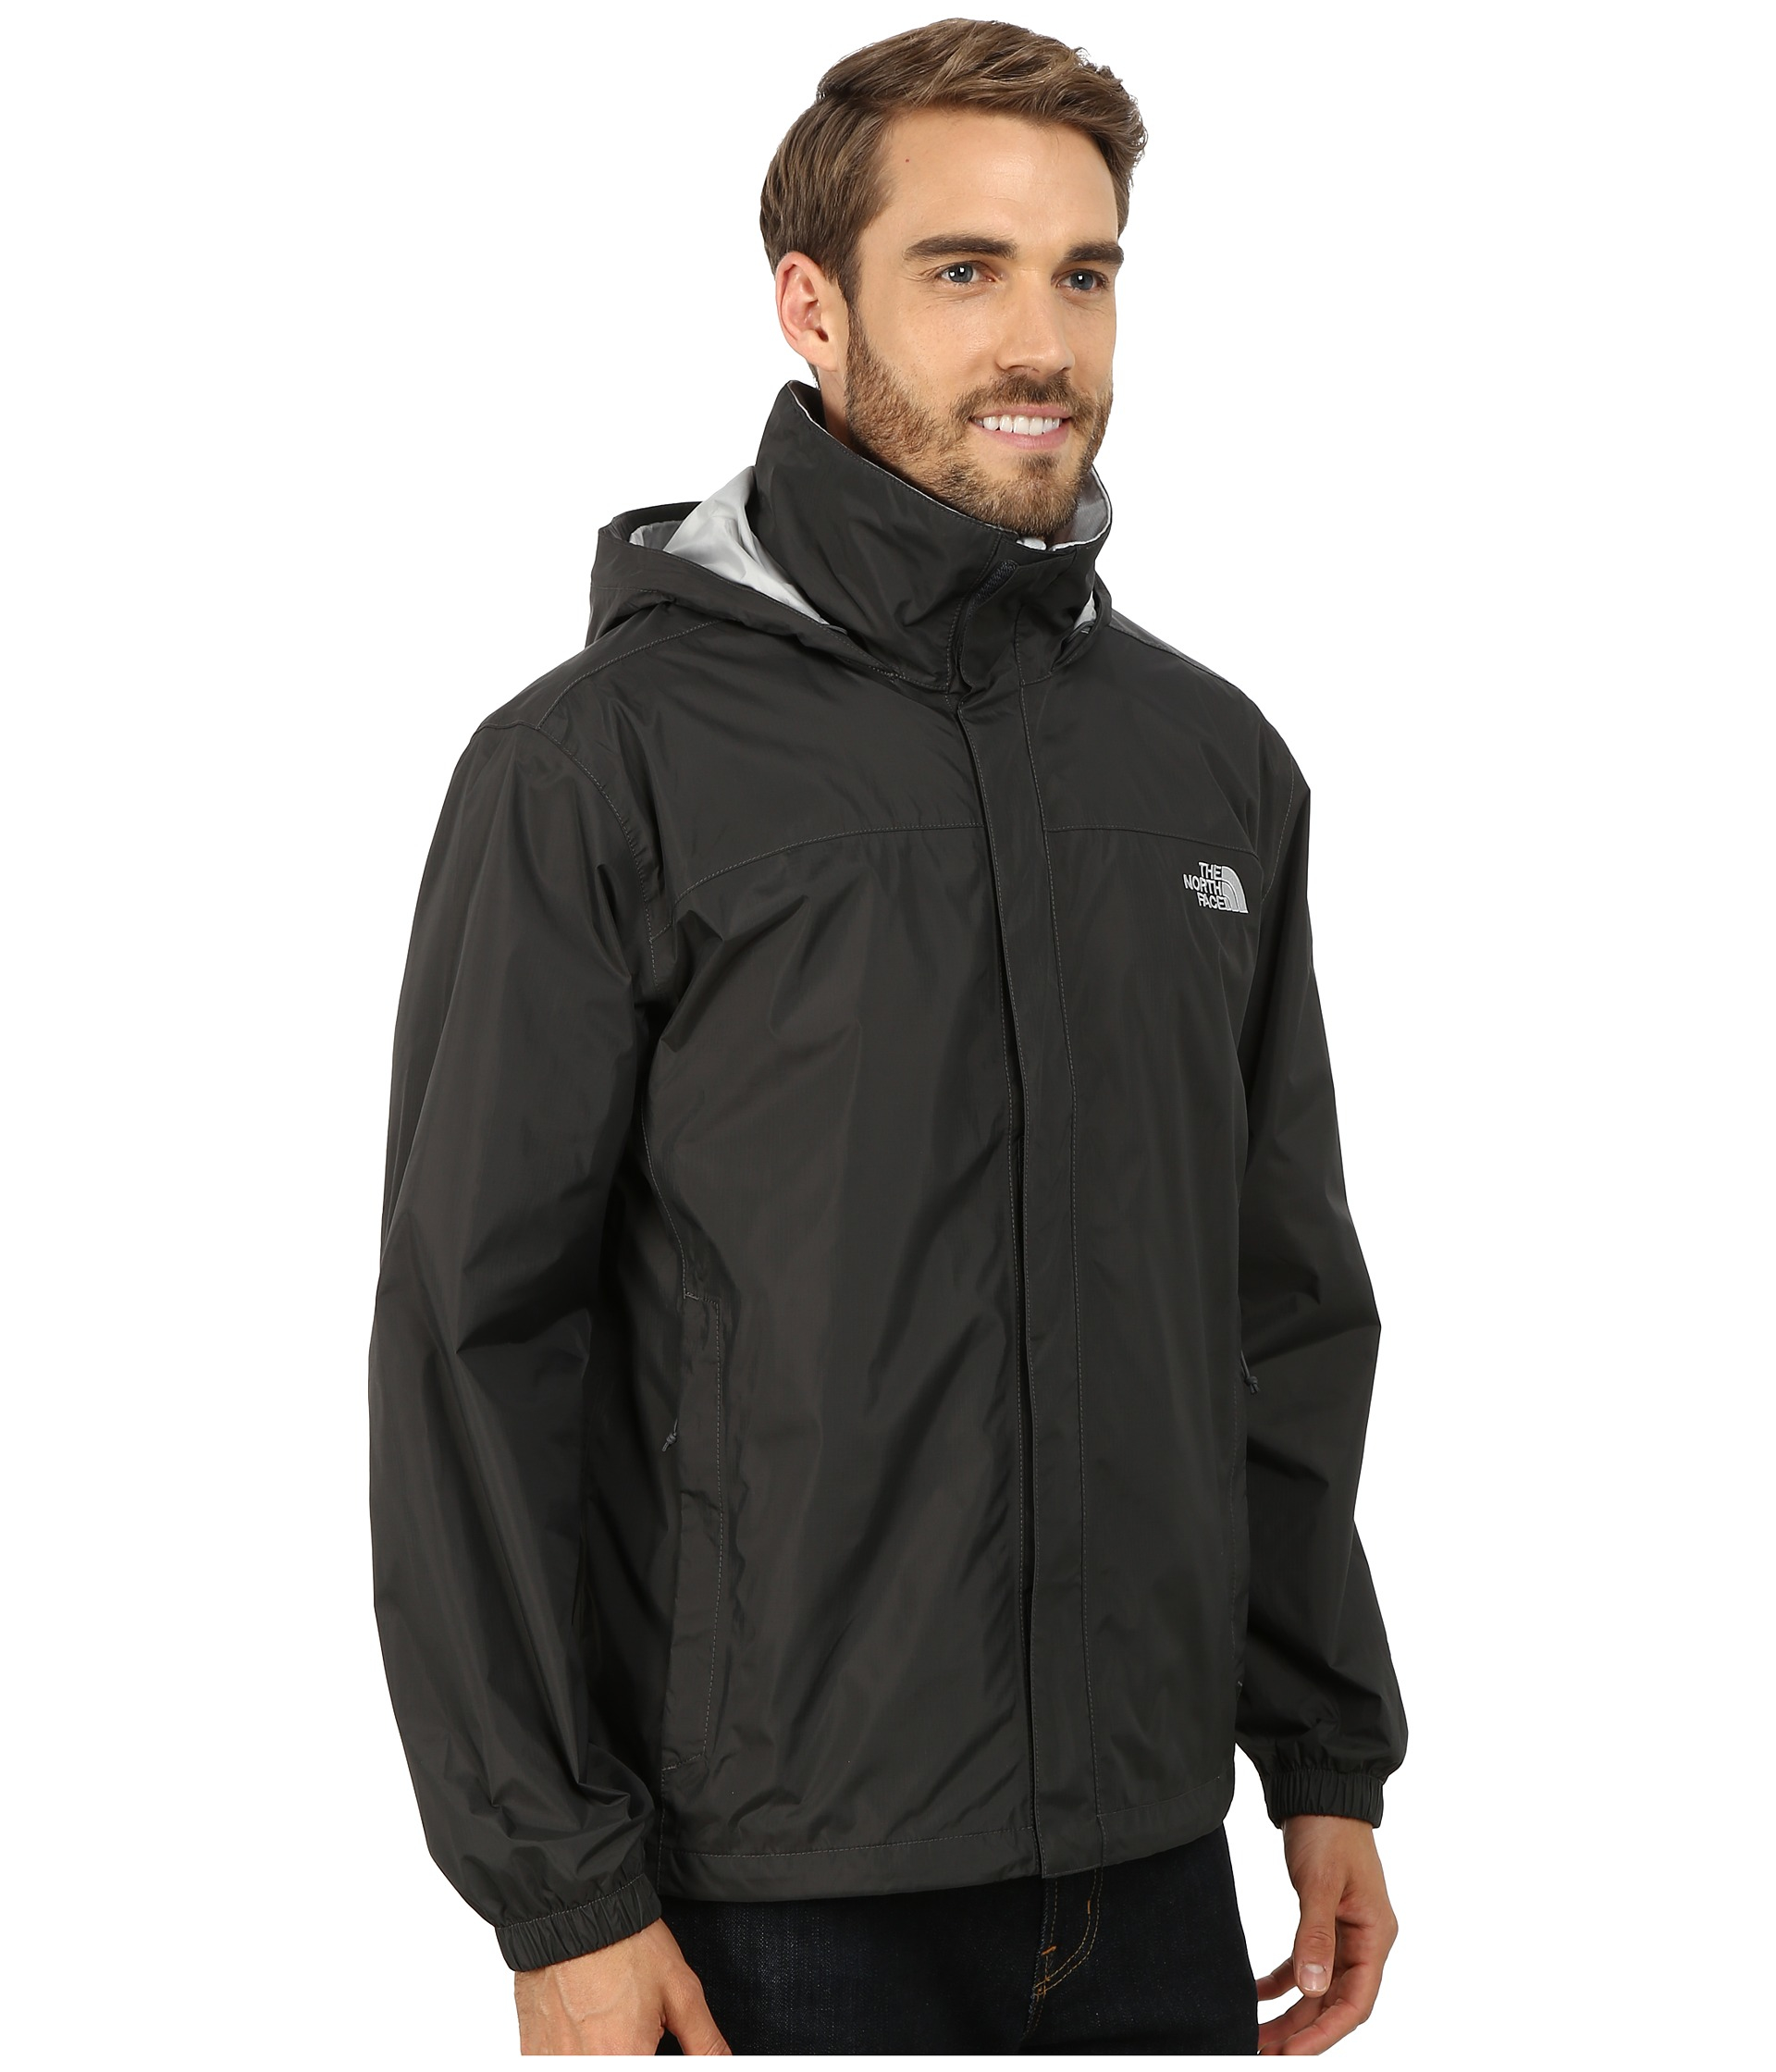 Lyst - The North Face Resolve Jacket in Black for Men d93bb1408